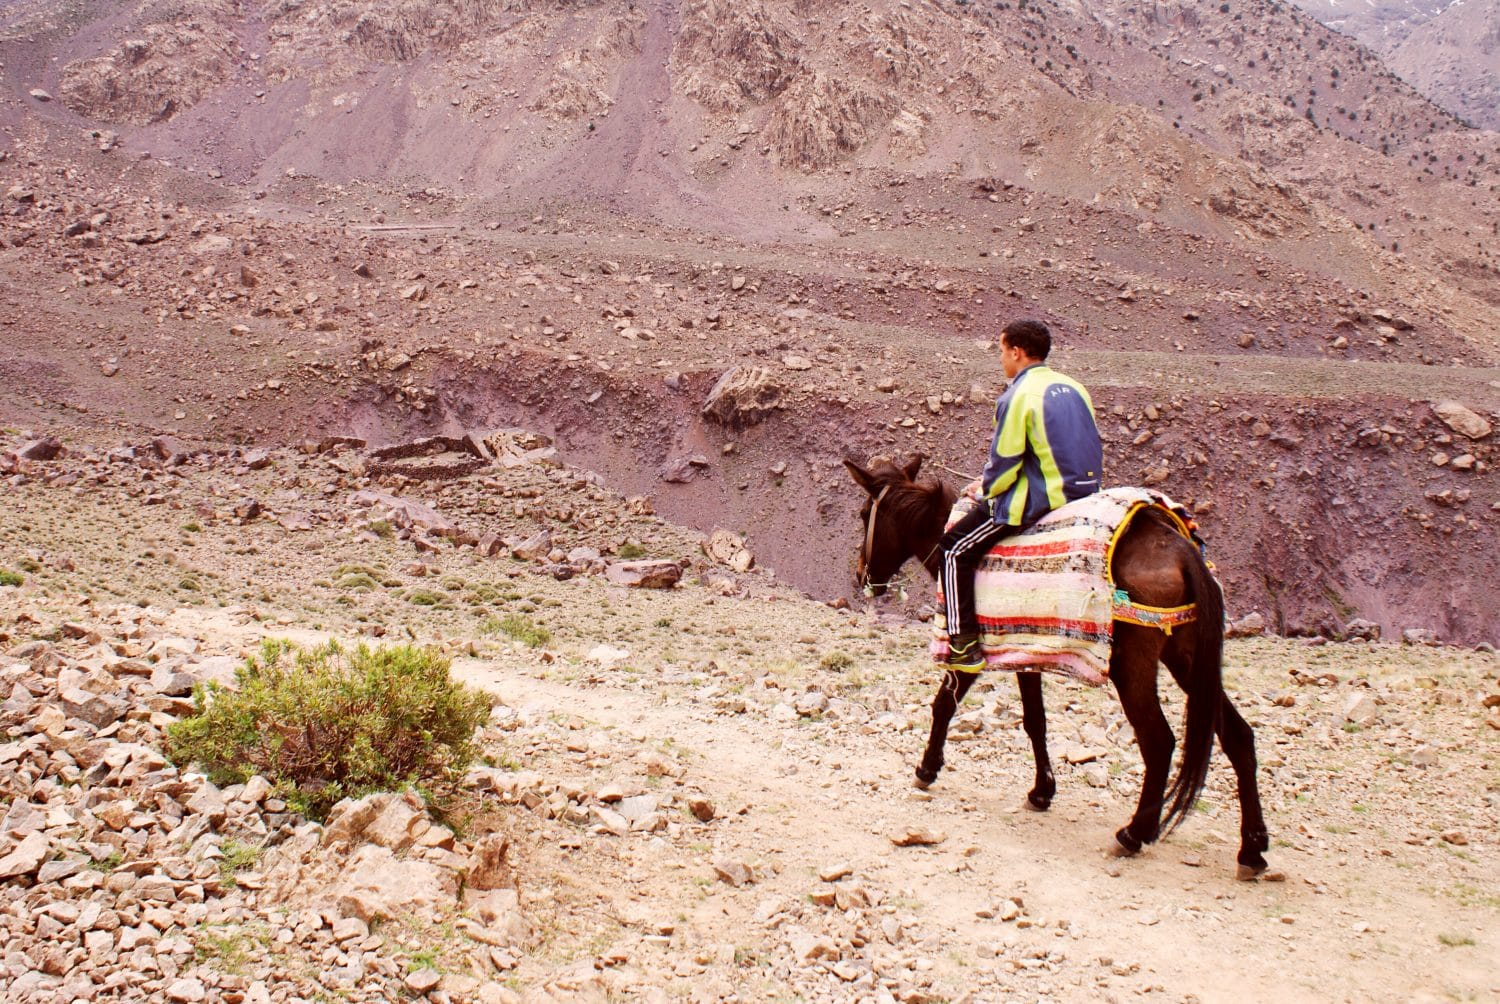 Hiking in the Atlas Mountains: A Photo Essay